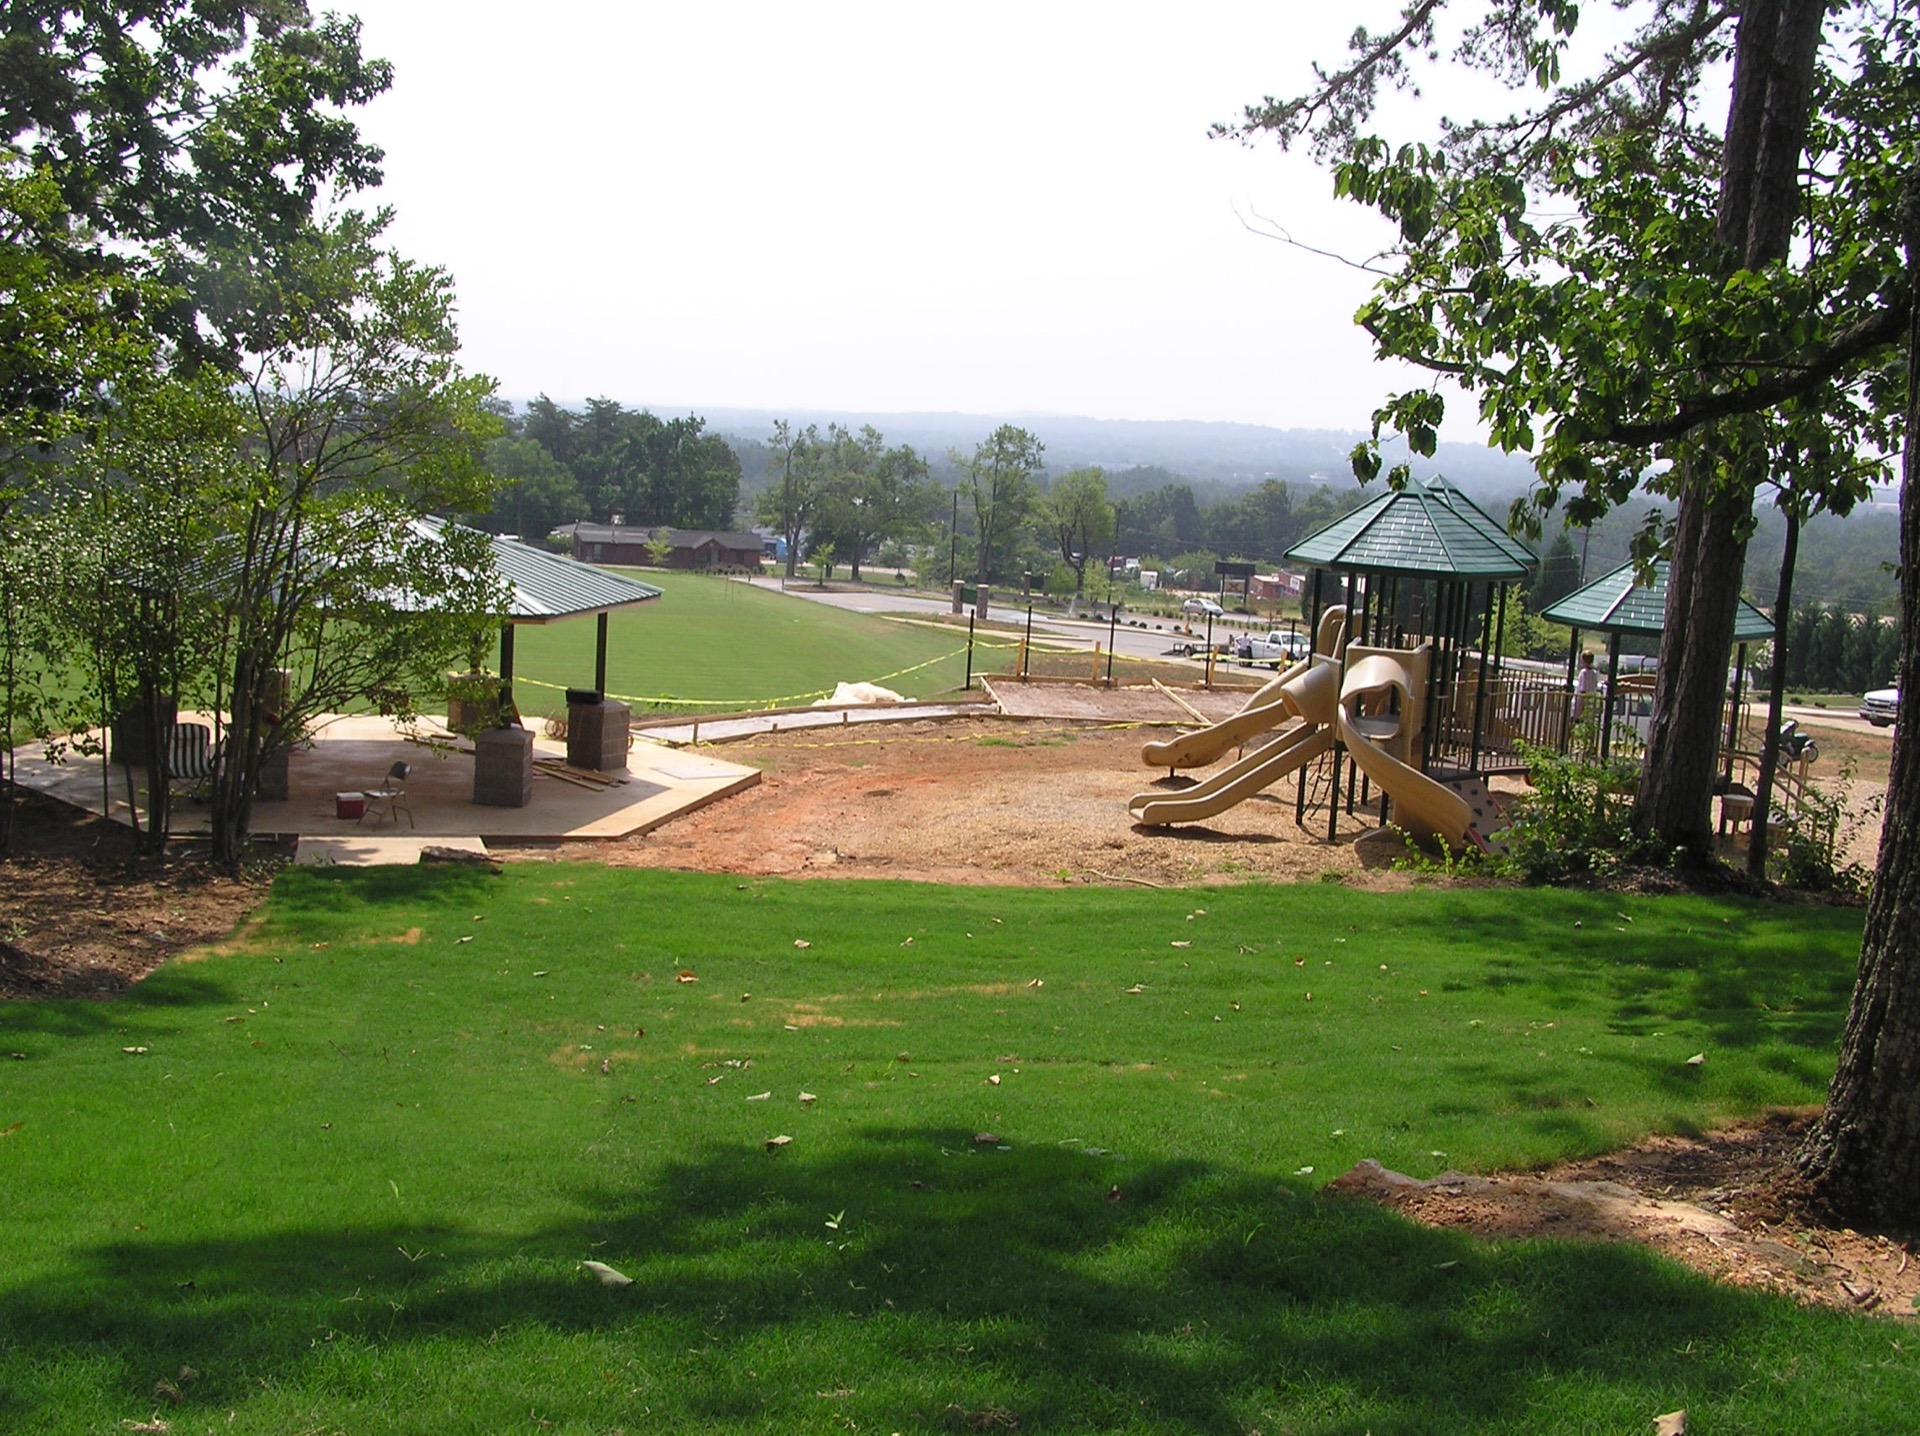 herdklotz park playground and shelter